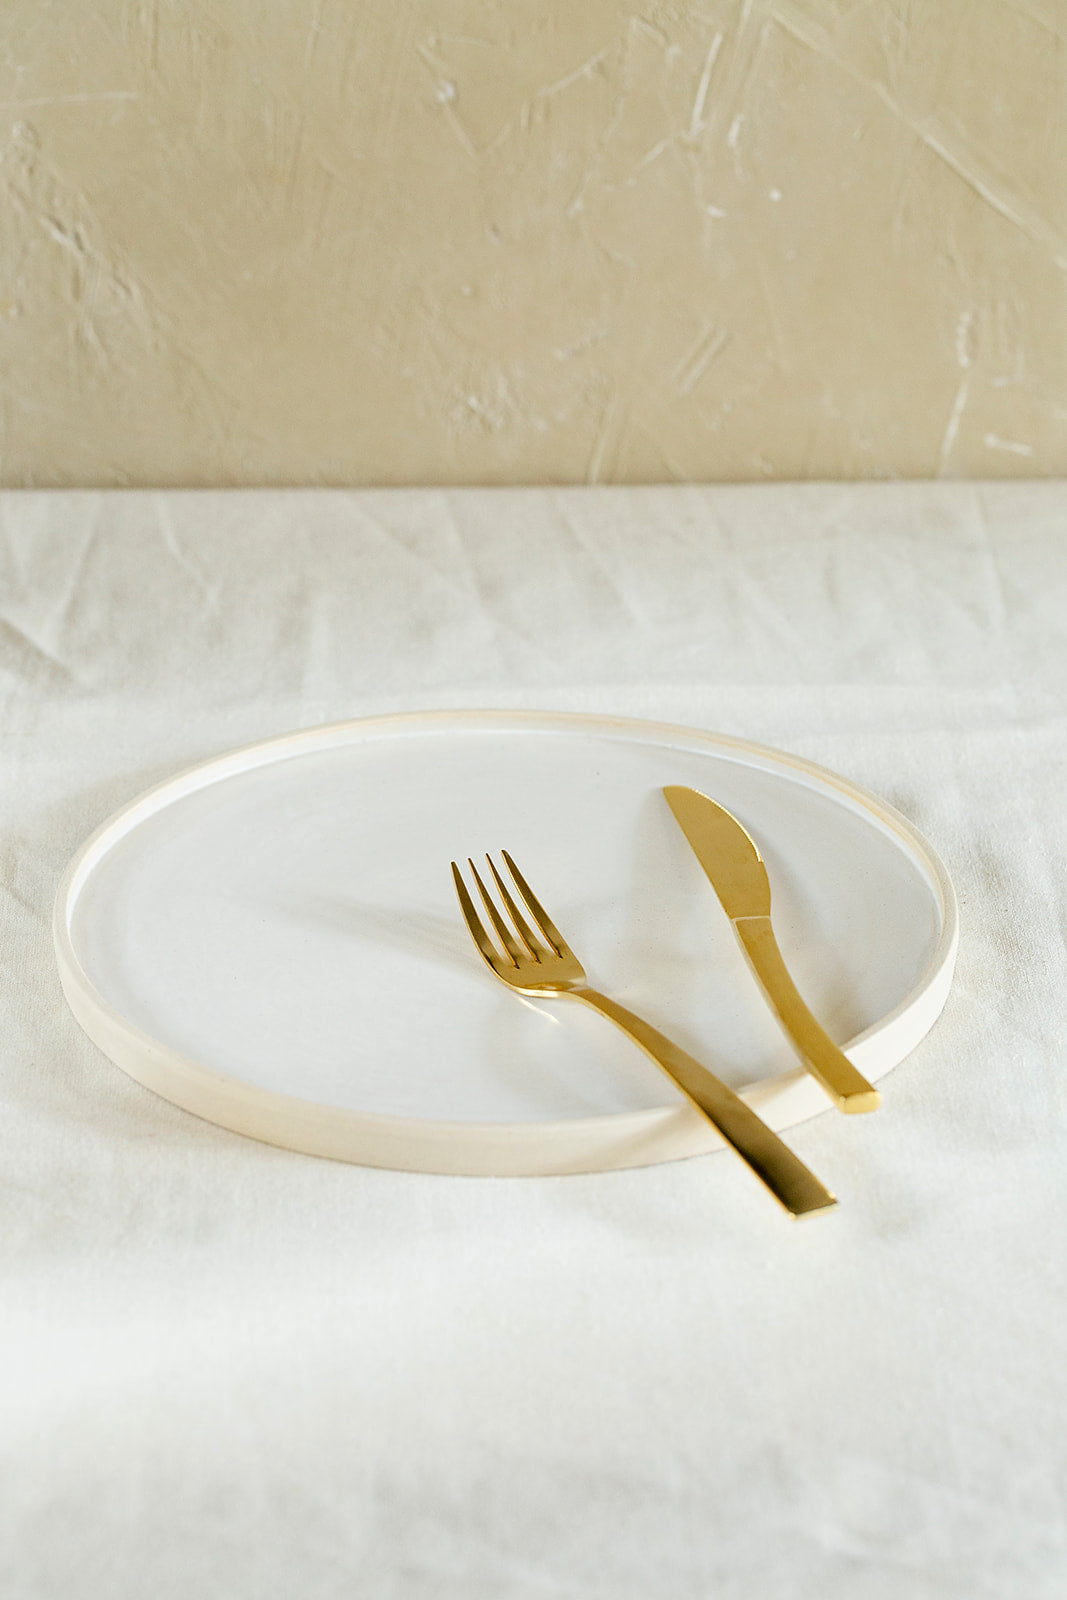 White main course plate